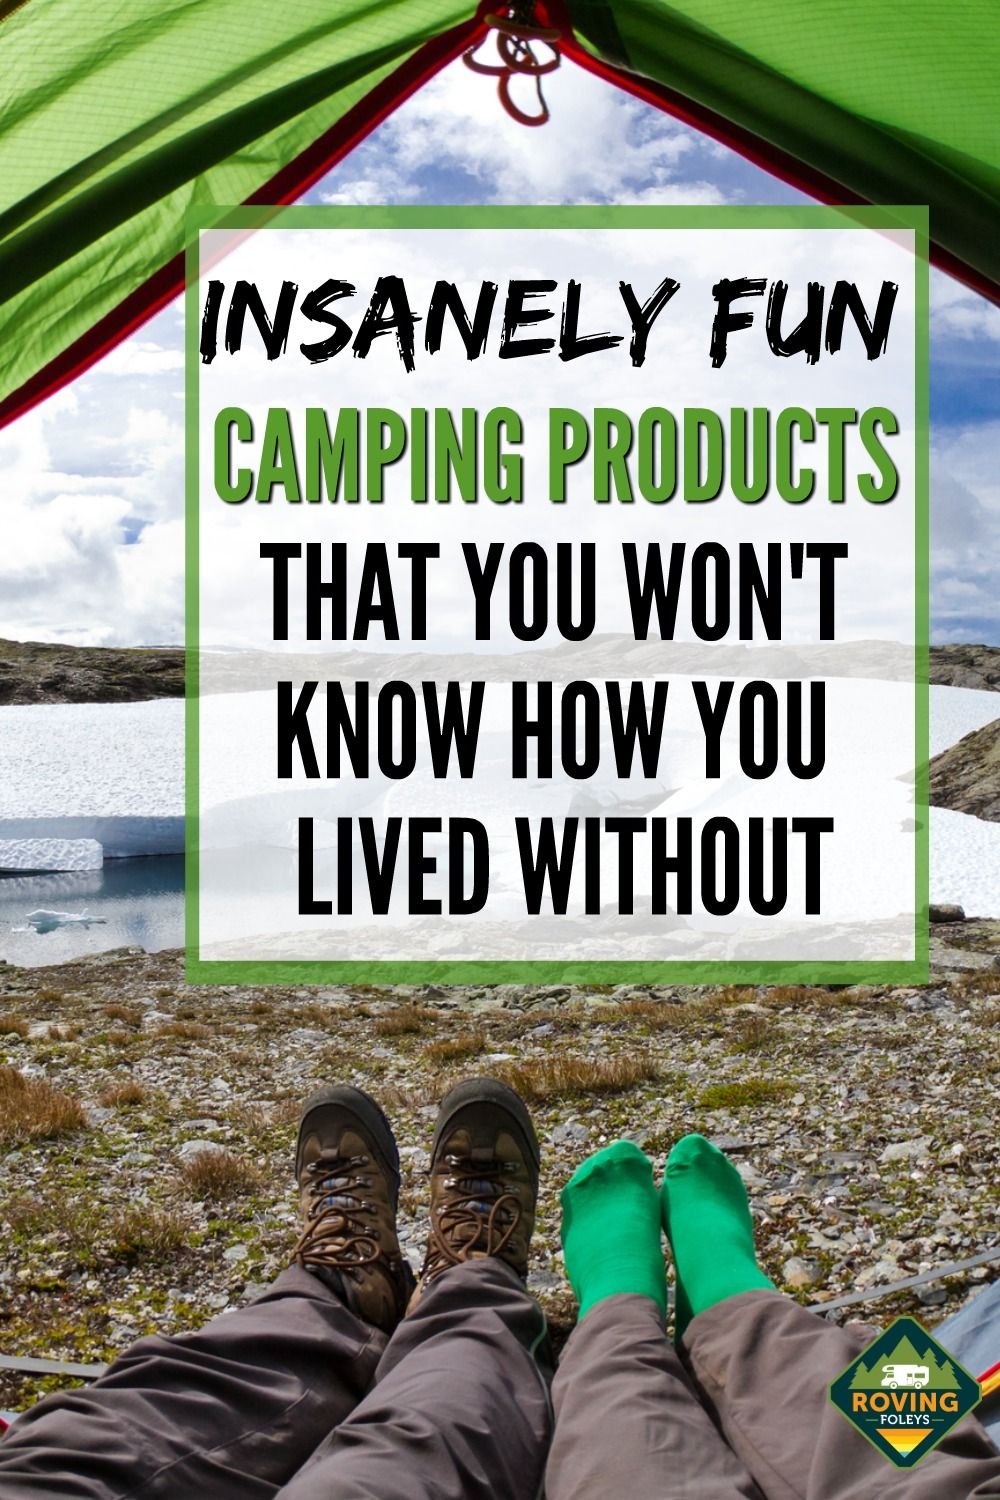 Fun Camping Products You Won't Know How You Lived Without Them!